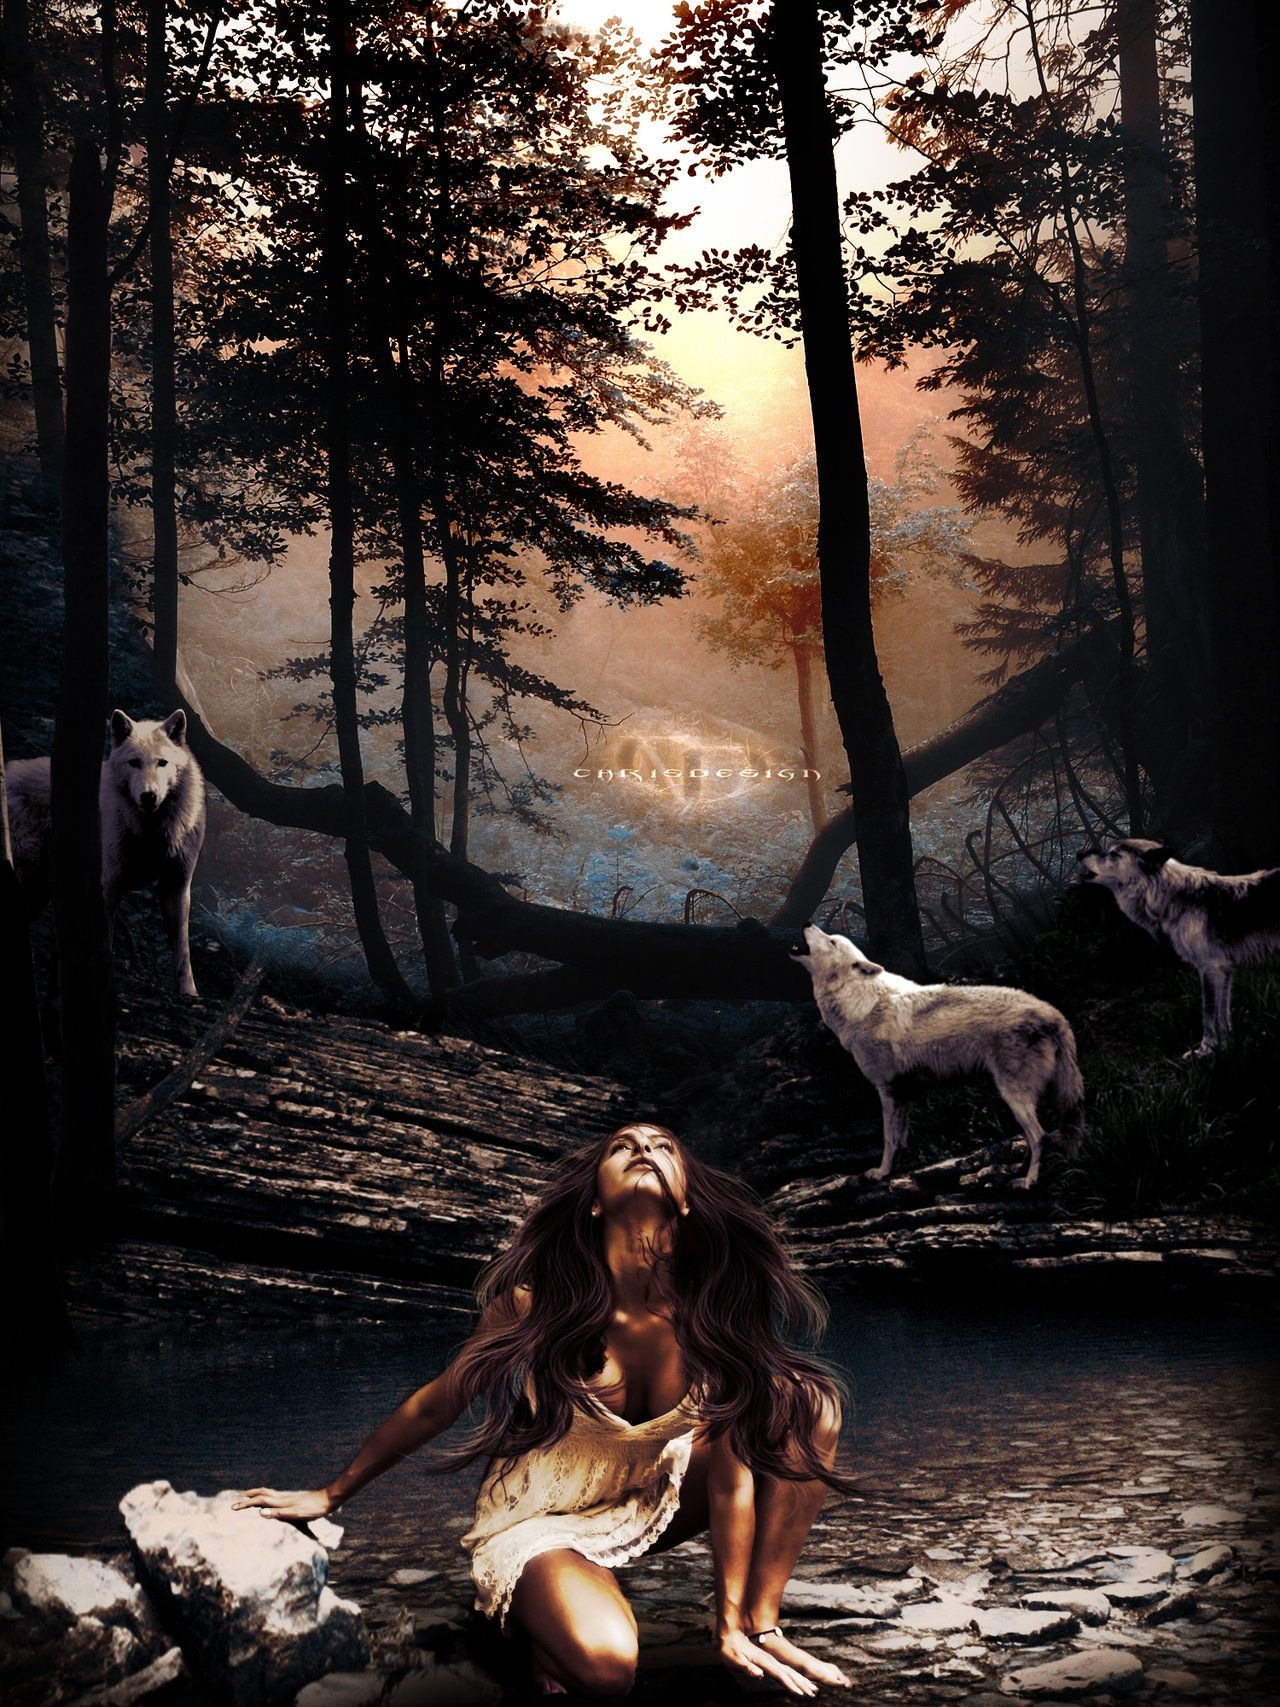 Woman Of Wolves By Chrisdesign47Deviantartcom On -6758